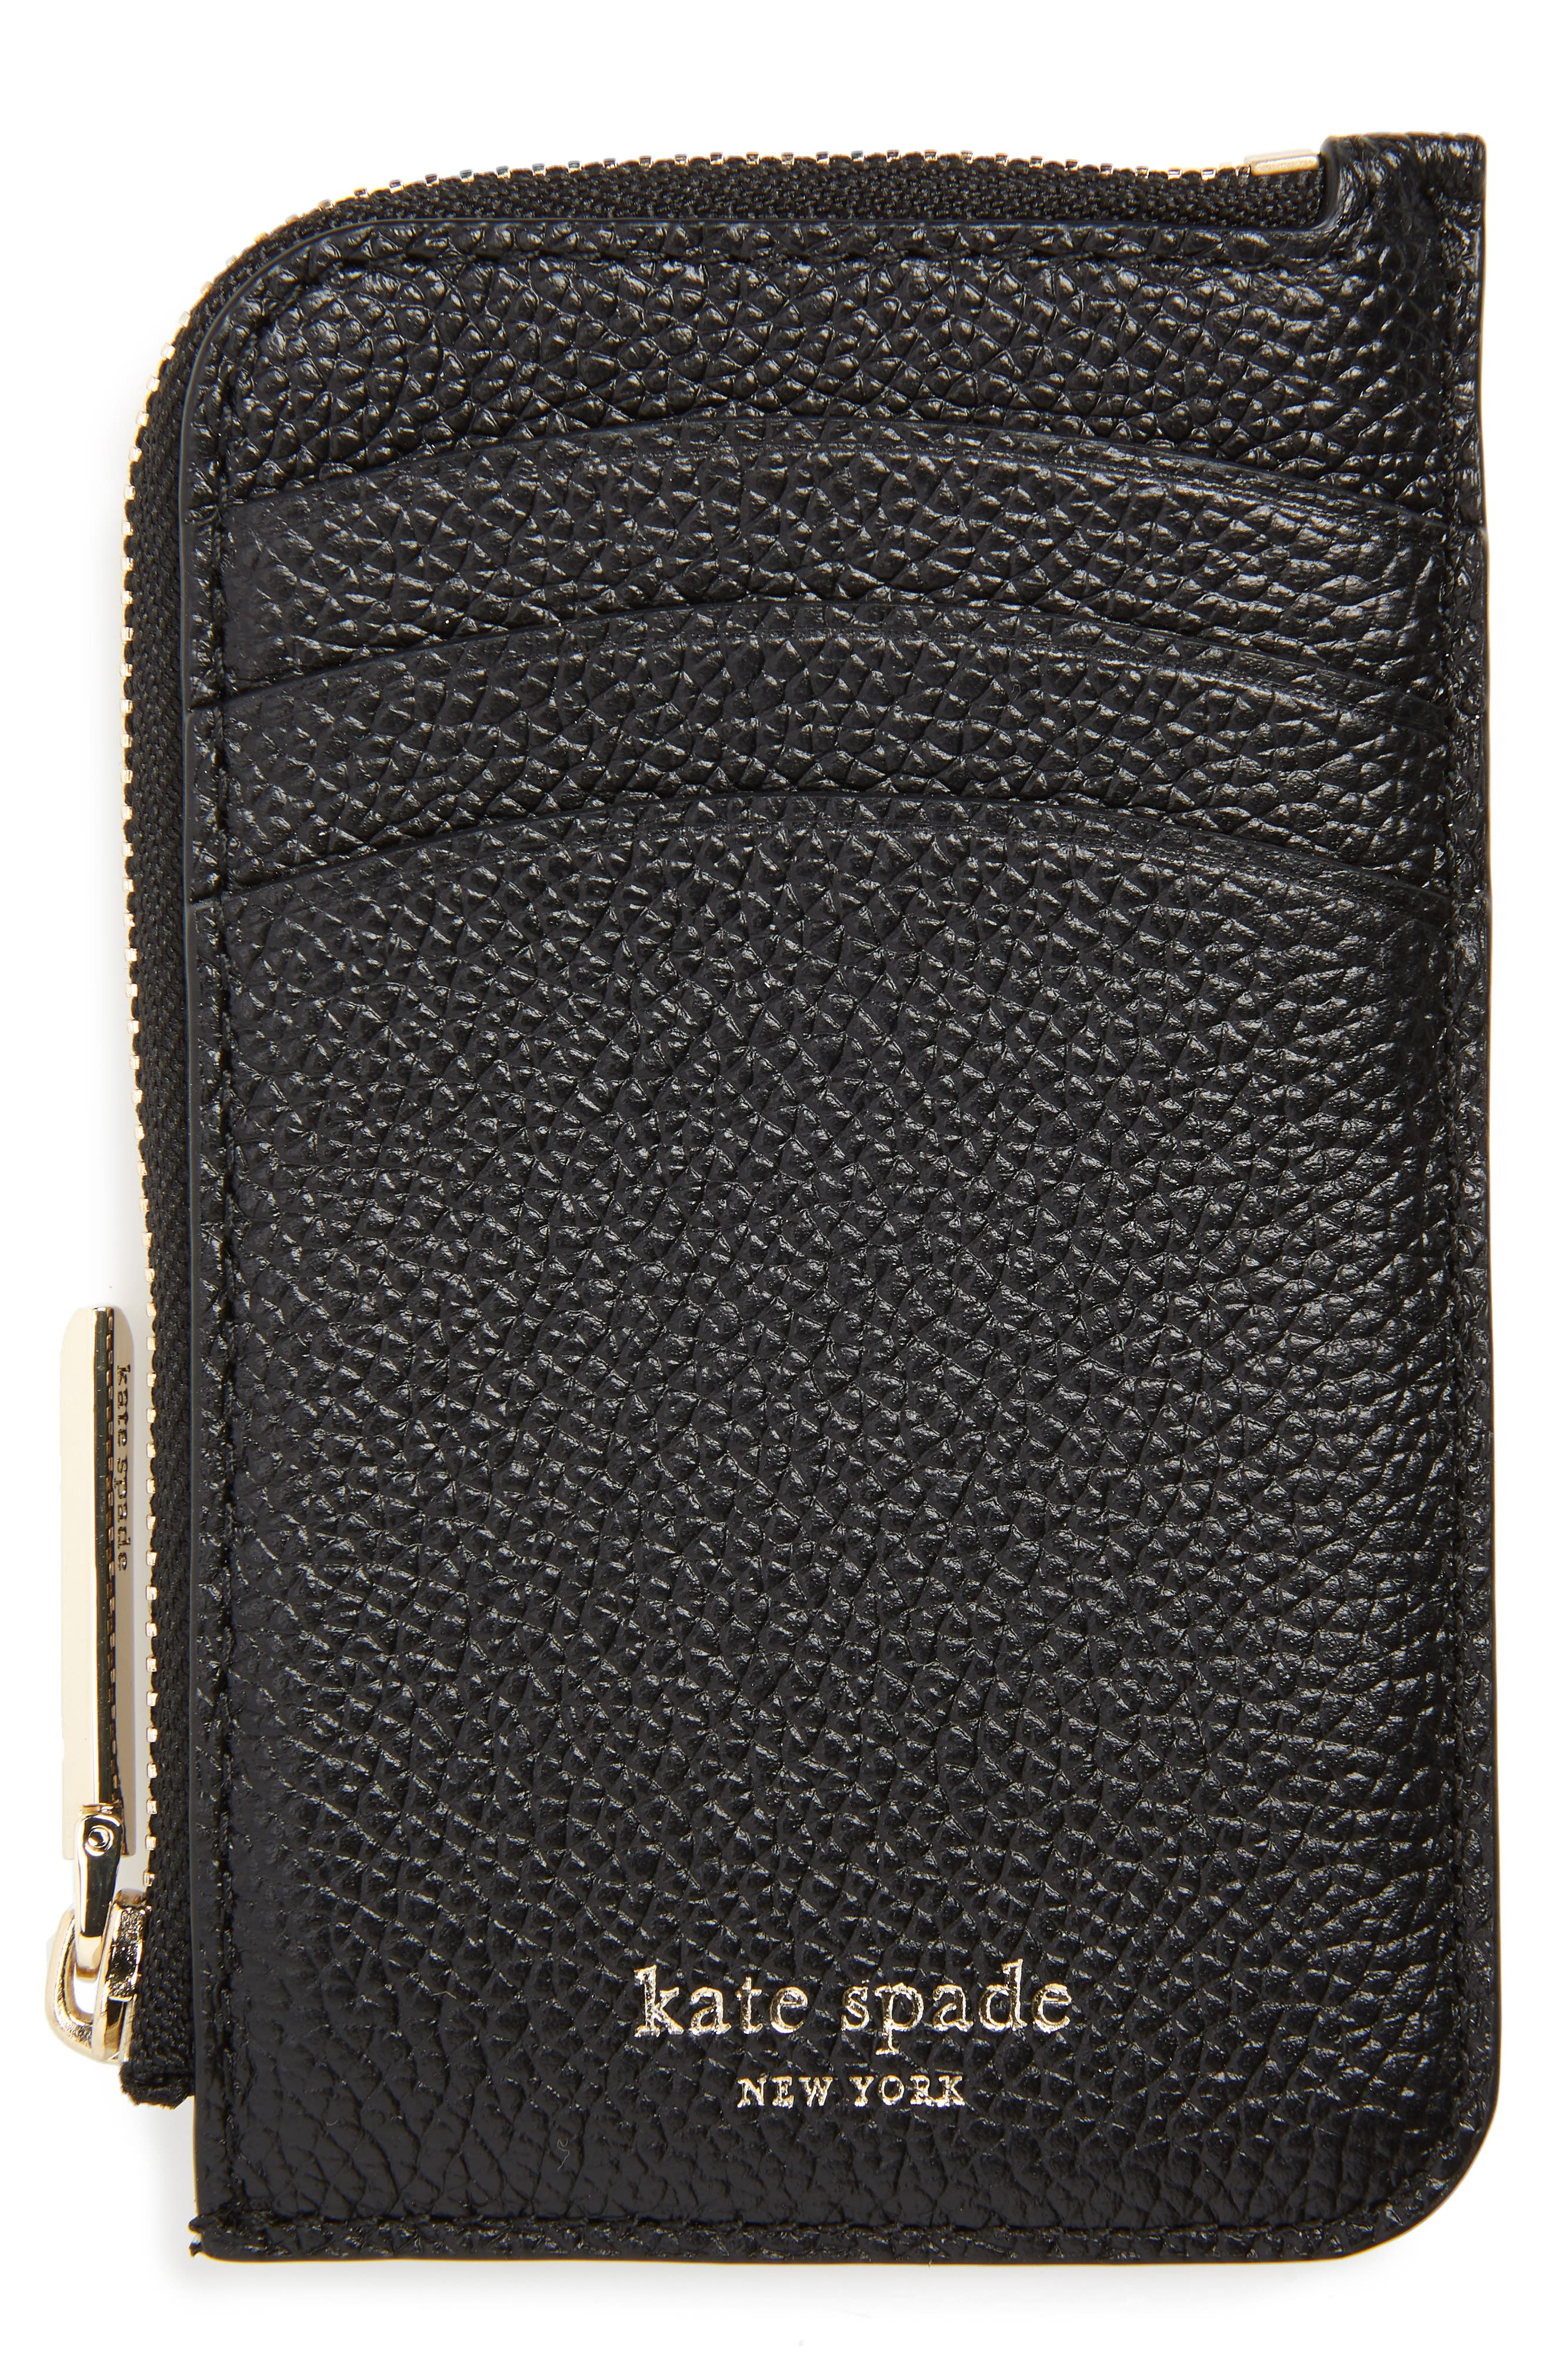 KATE SPADE NEW YORK,                             margaux leather zip card holder,                             Main thumbnail 1, color,                             BLACK